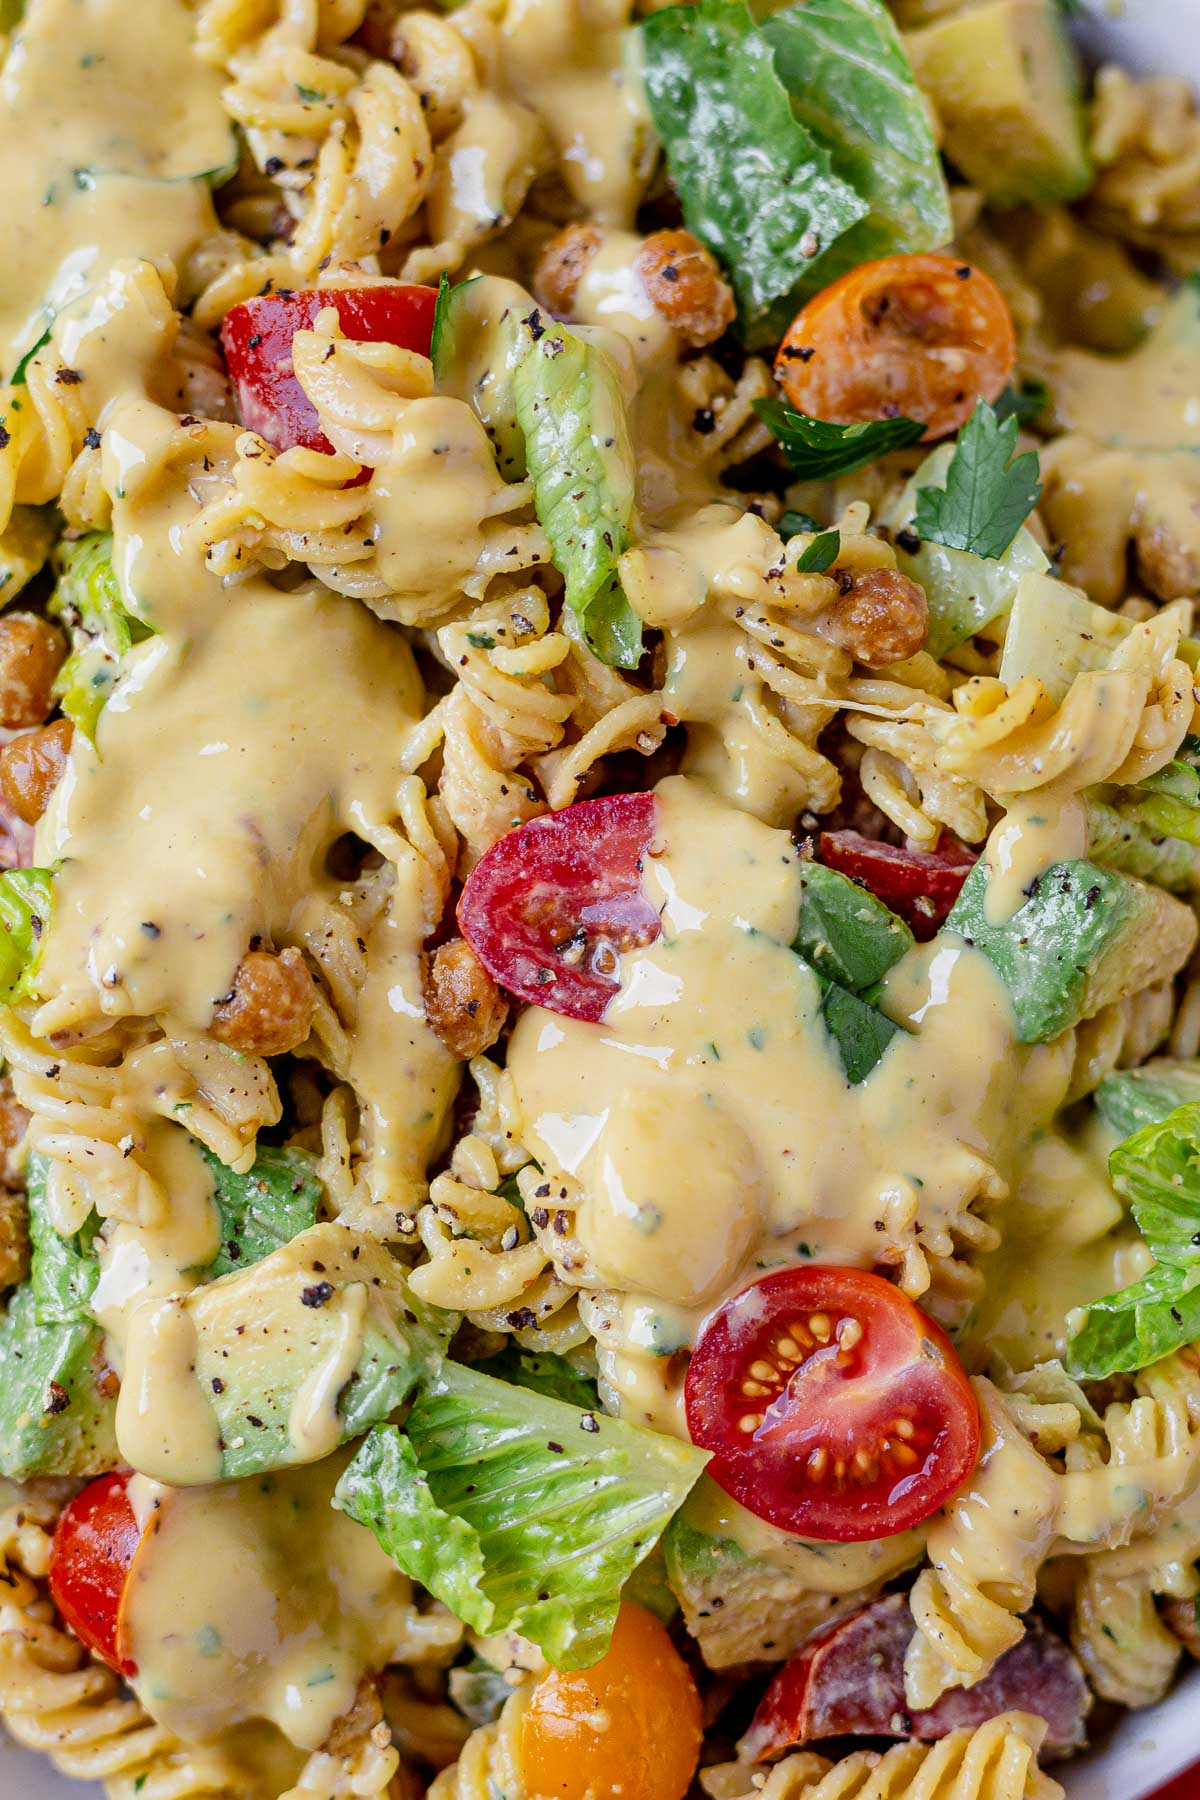 close up shot of caesar pasta salad made with halved cherry tomatoes, chopped romaine, chickpeas and avocado dressing in a creamy caesar dressing